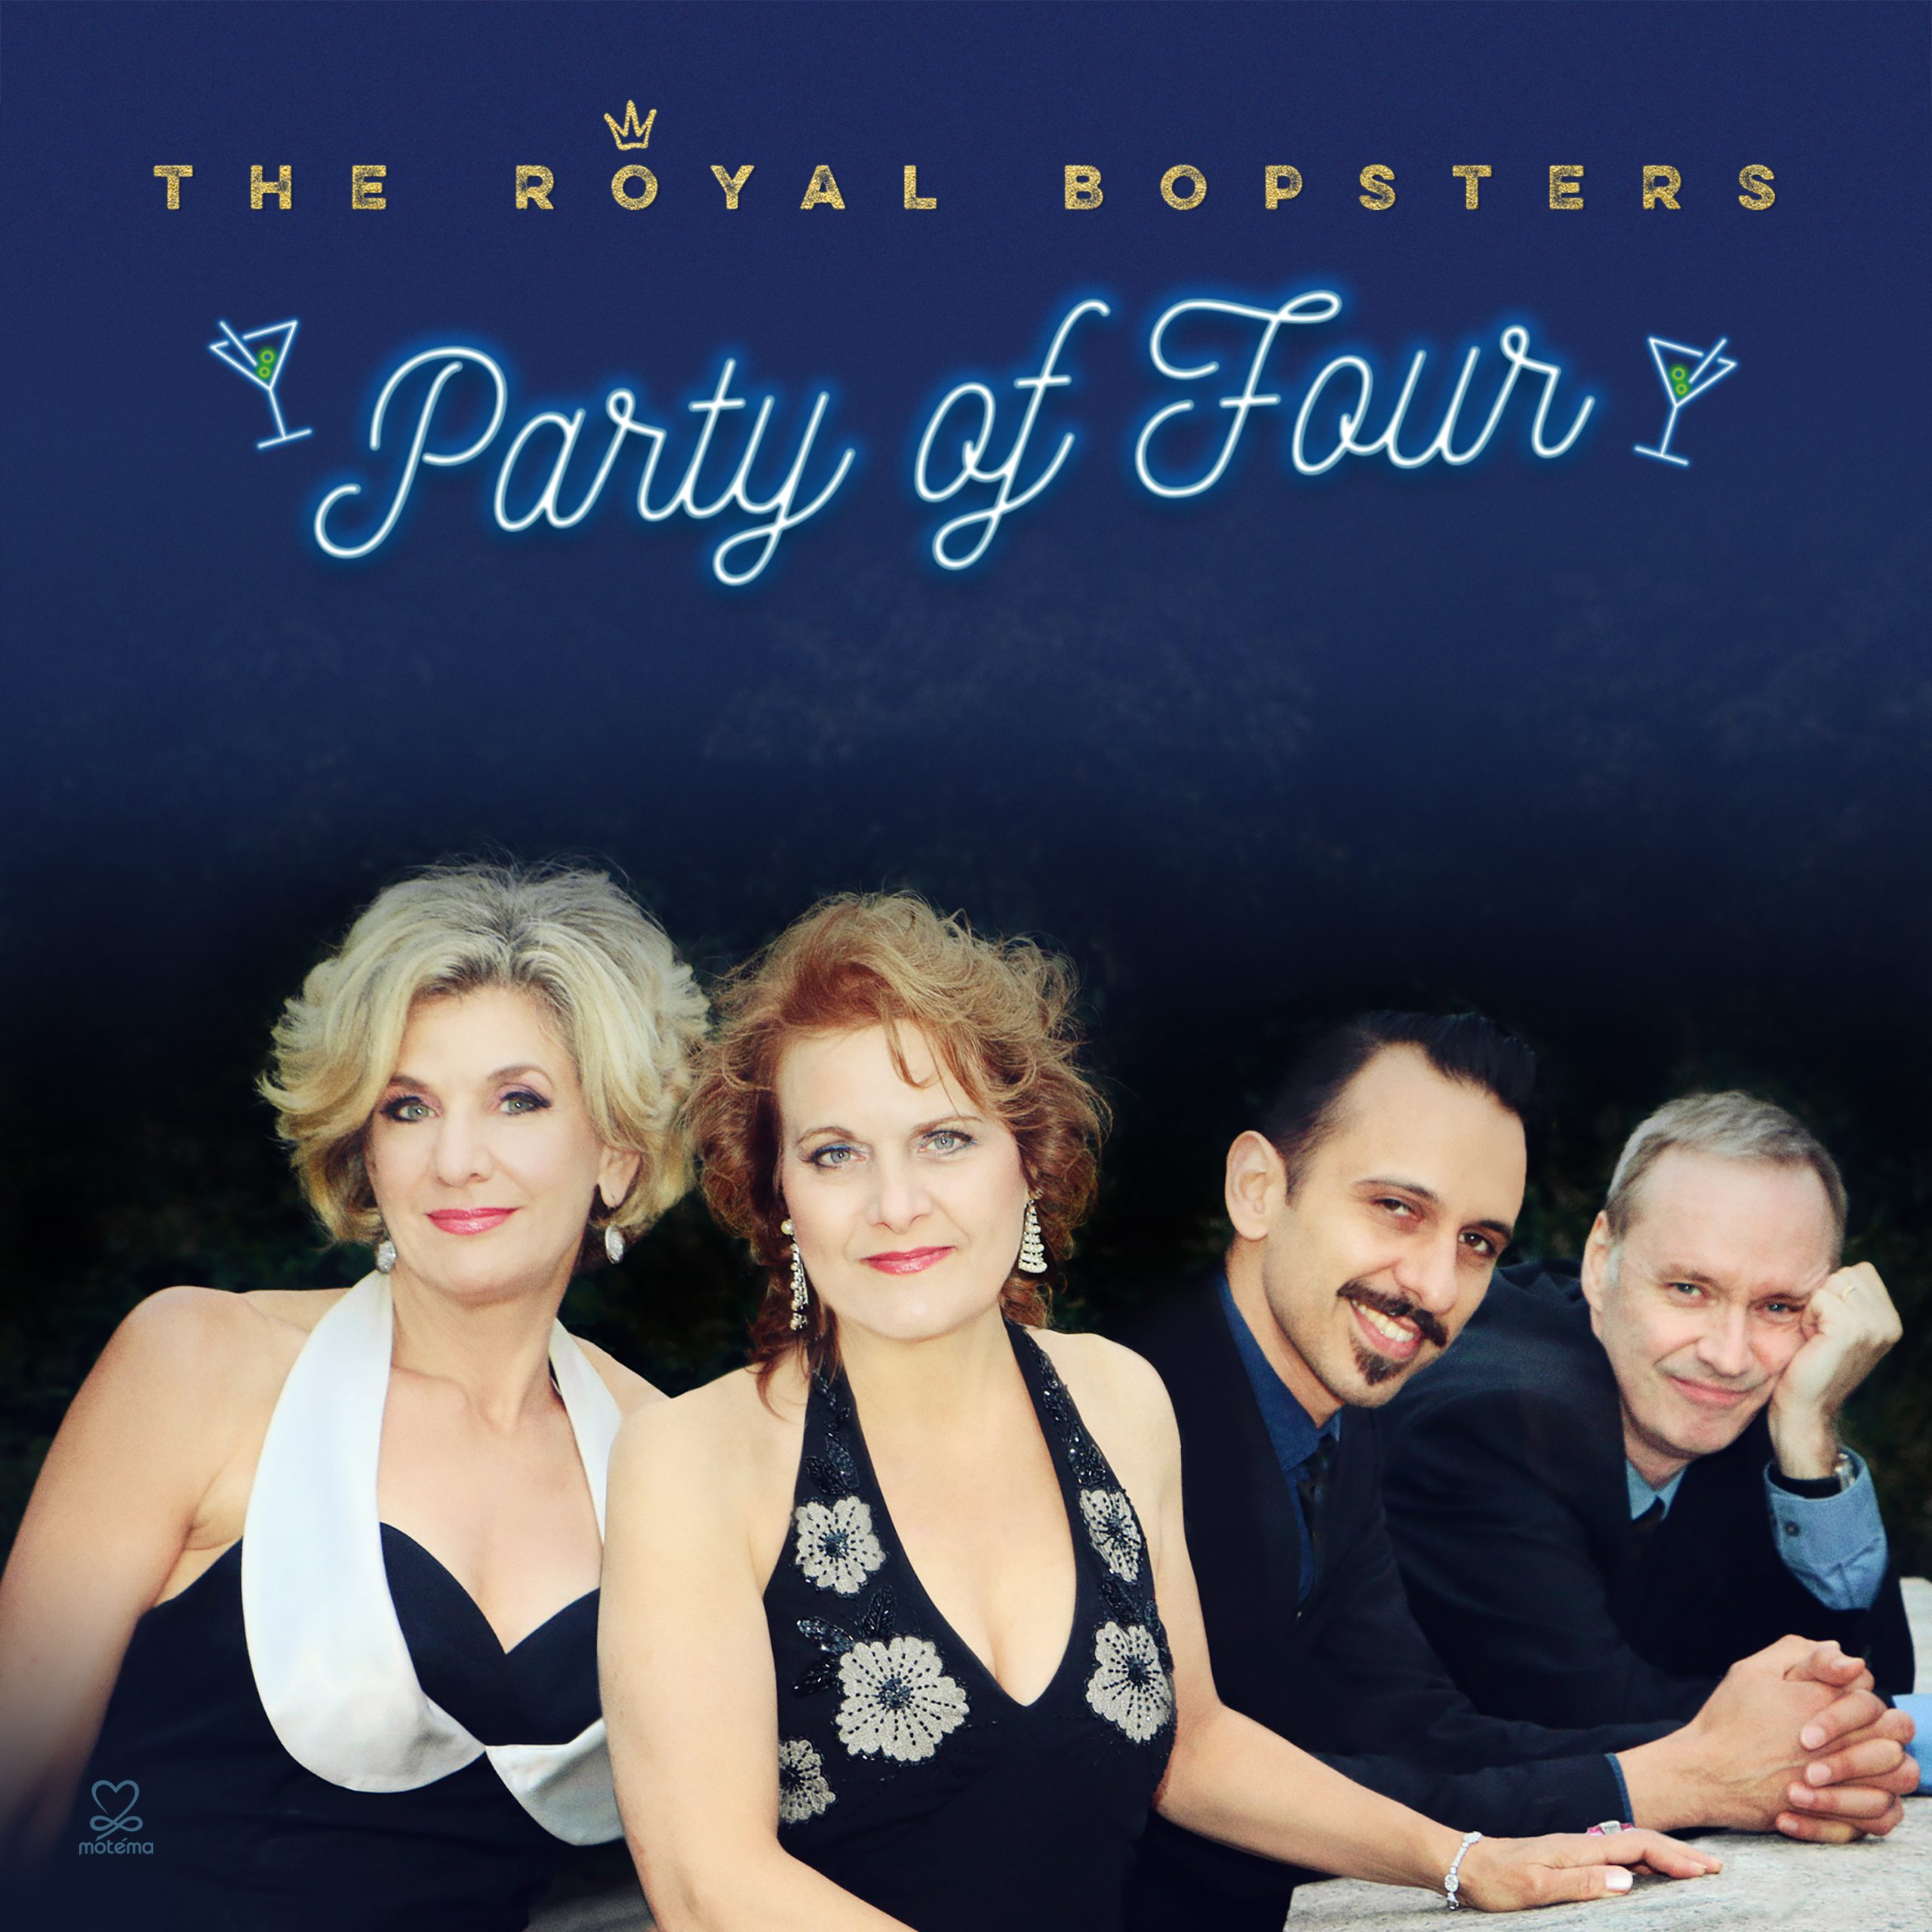 NEW RELEASE: The Royal Bopsters to Release 'Party of Four' with Sheila Jordan, Bob Dorough & Christian McBride – 11/13 on Motéma